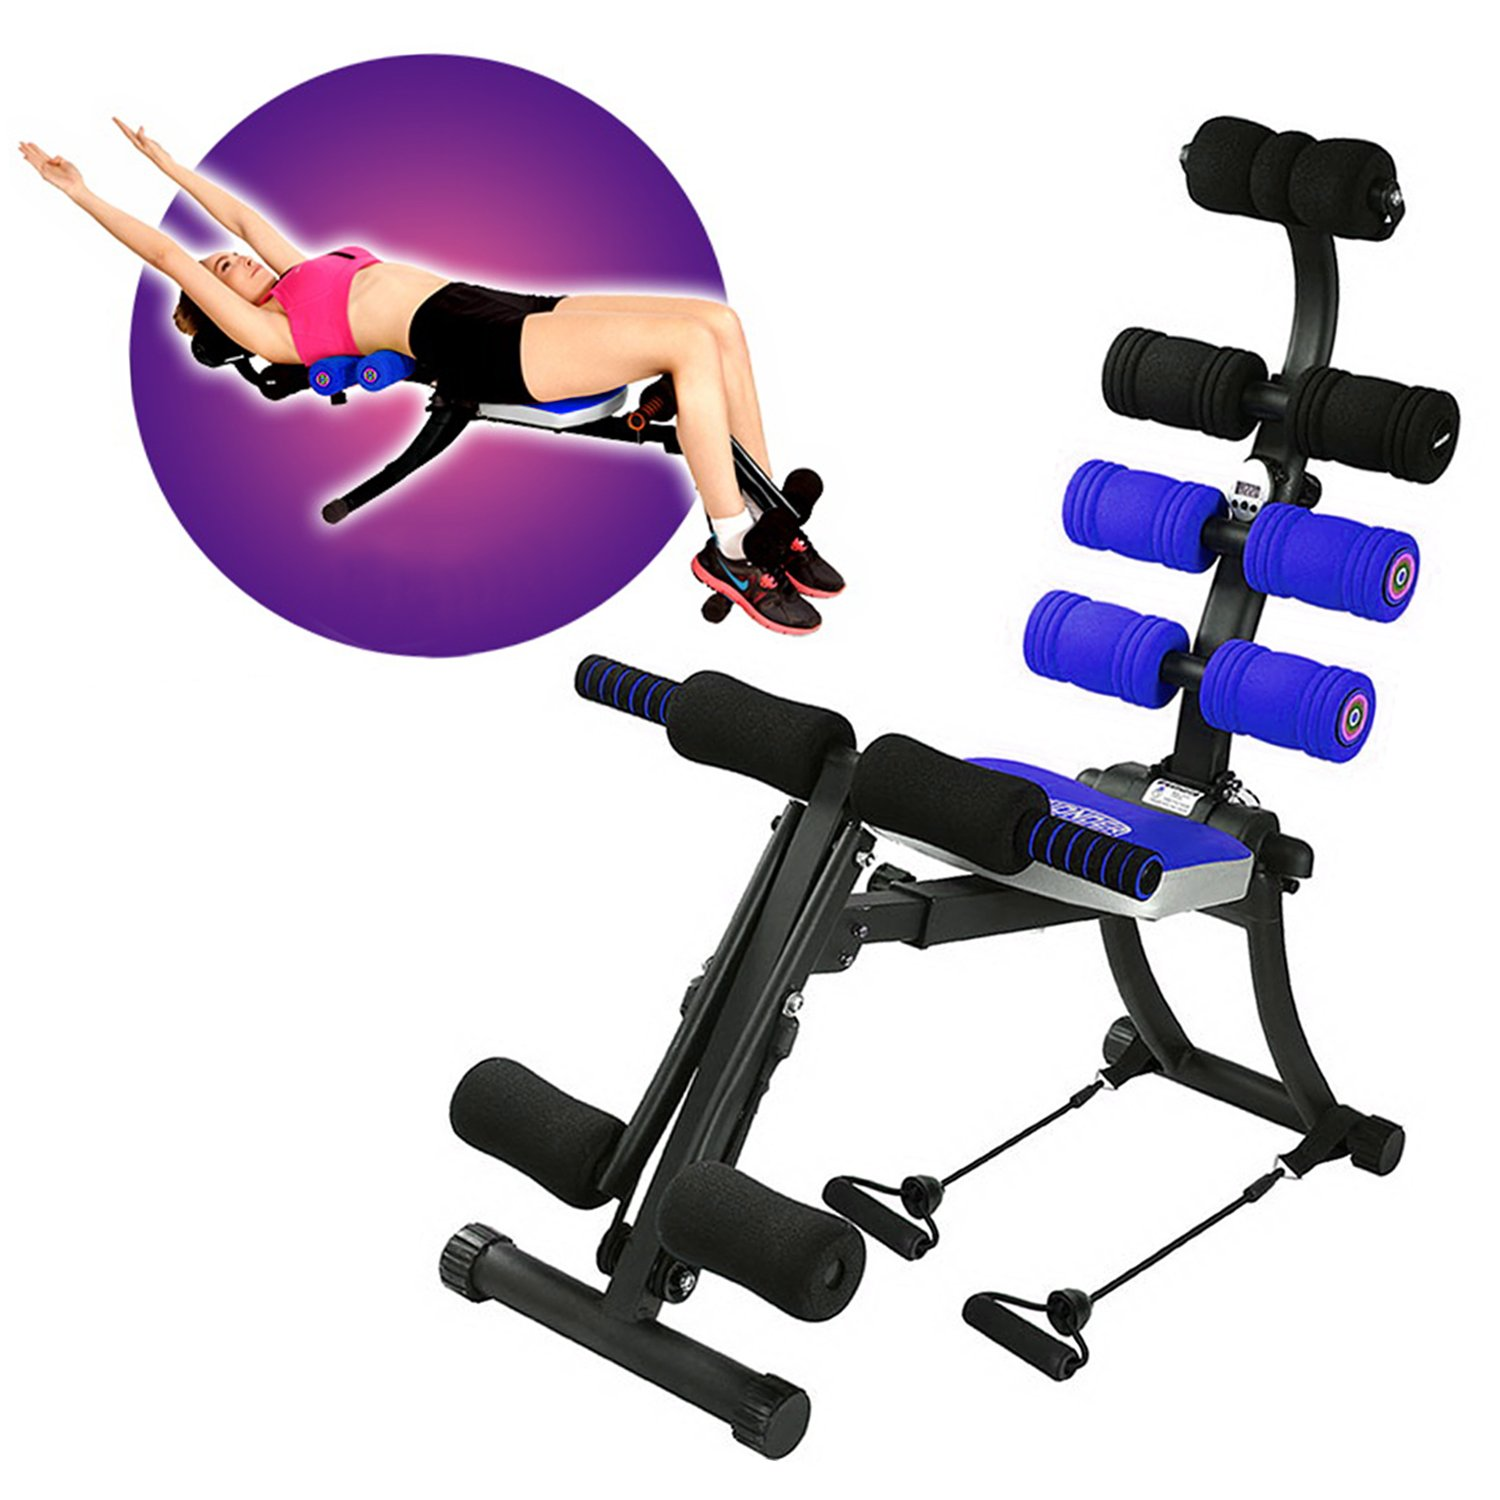 SYOSIN (22-1 Foldable Ab Exercise Machine Gym